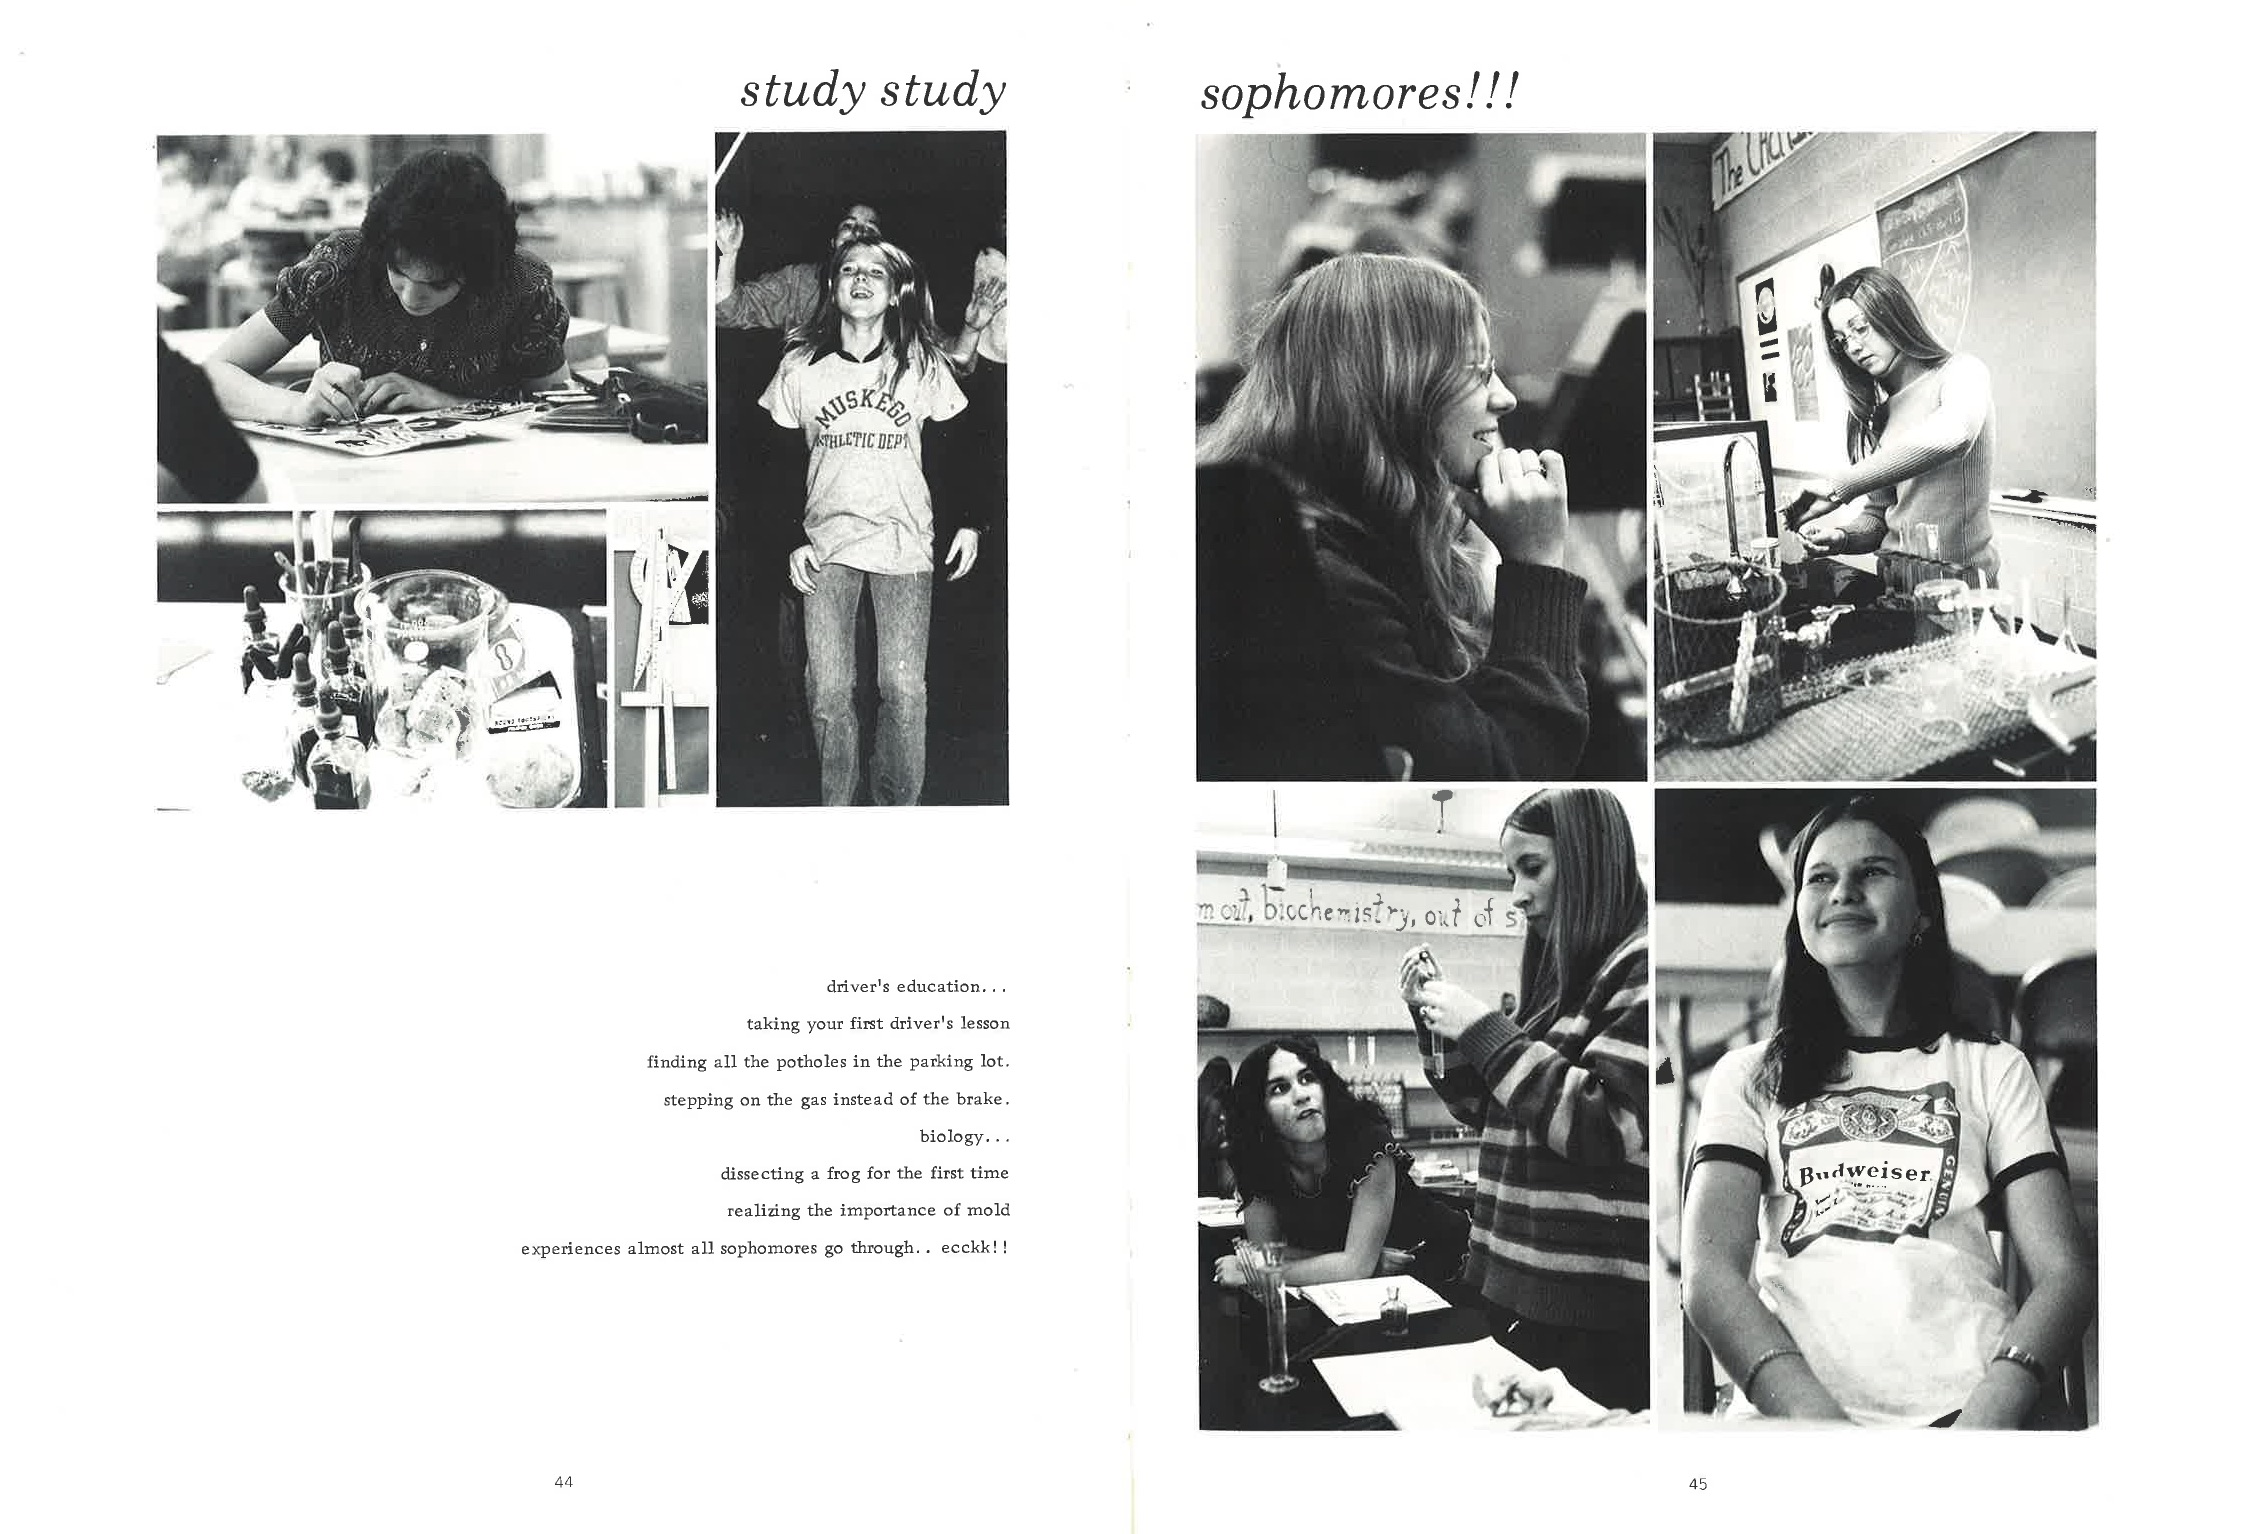 1973_Yearbook_44-45.jpg